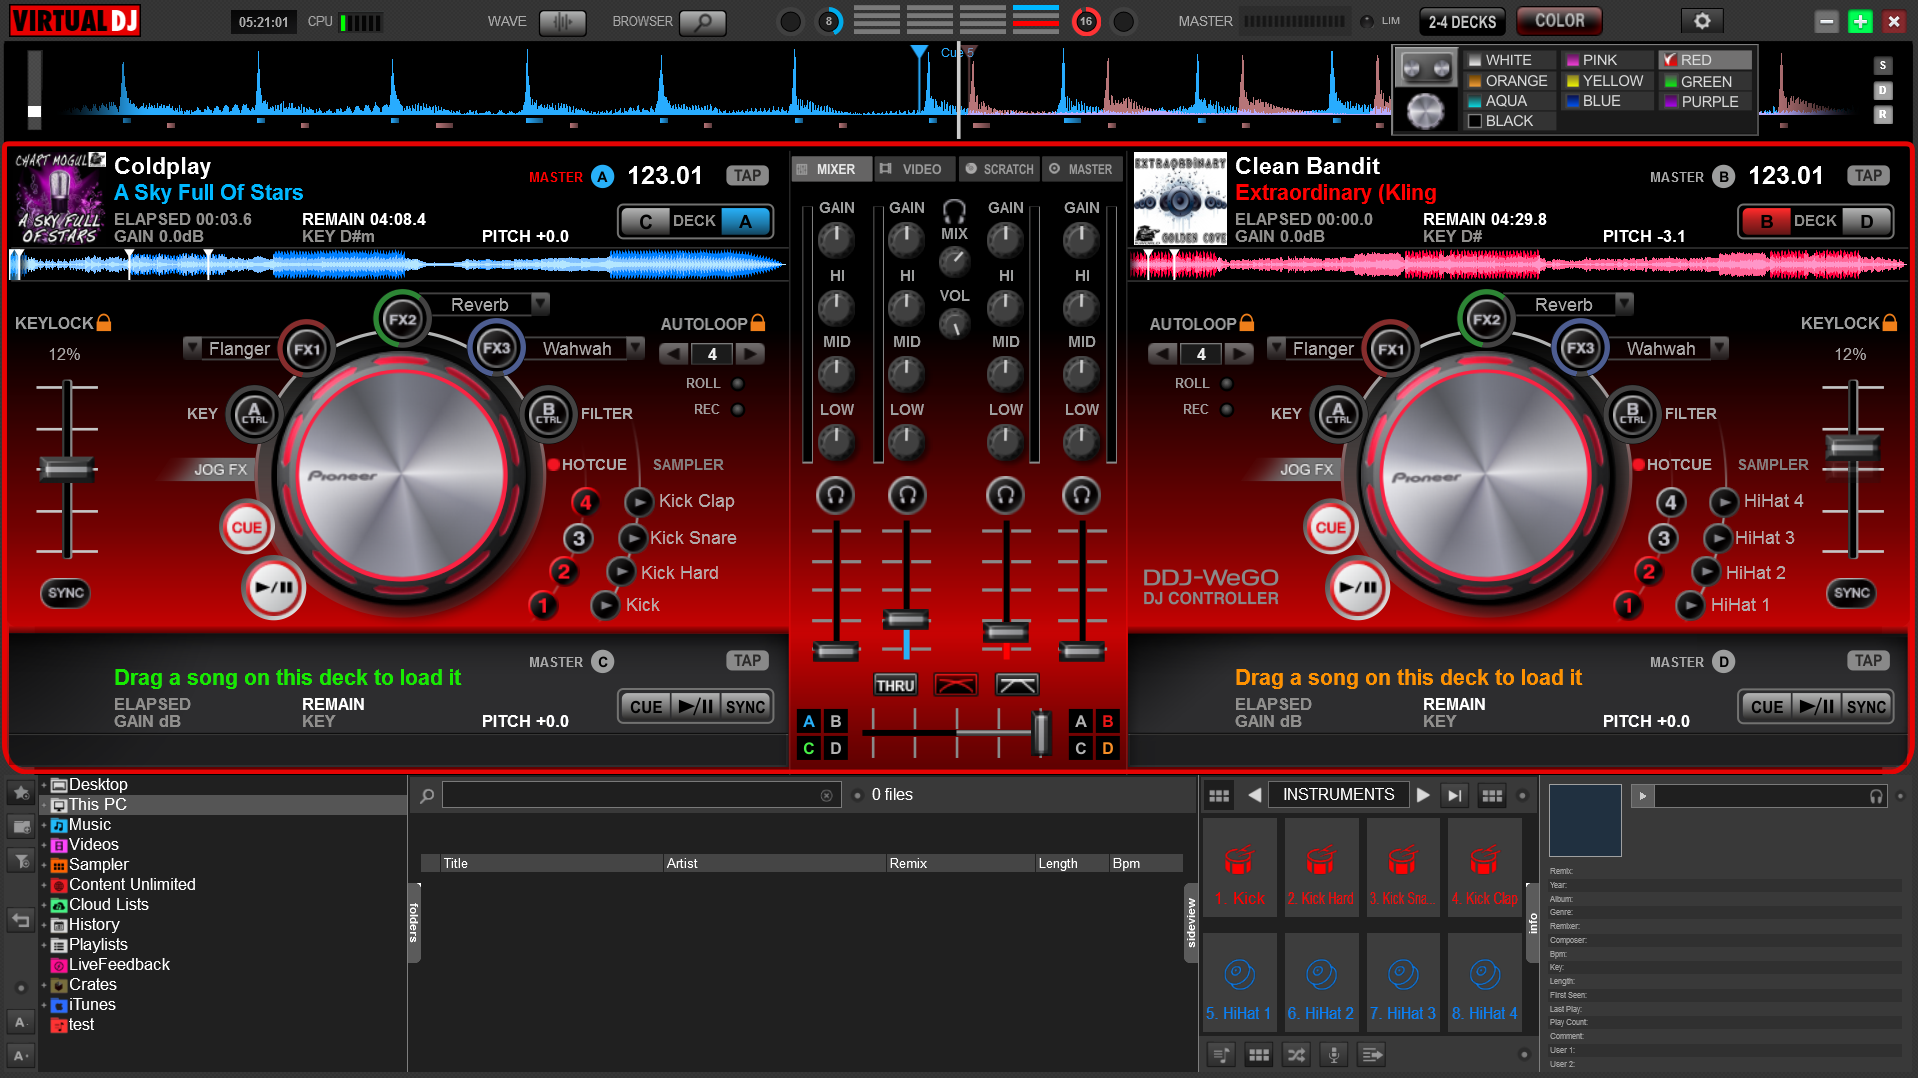 VirtualDJ - Download Addons